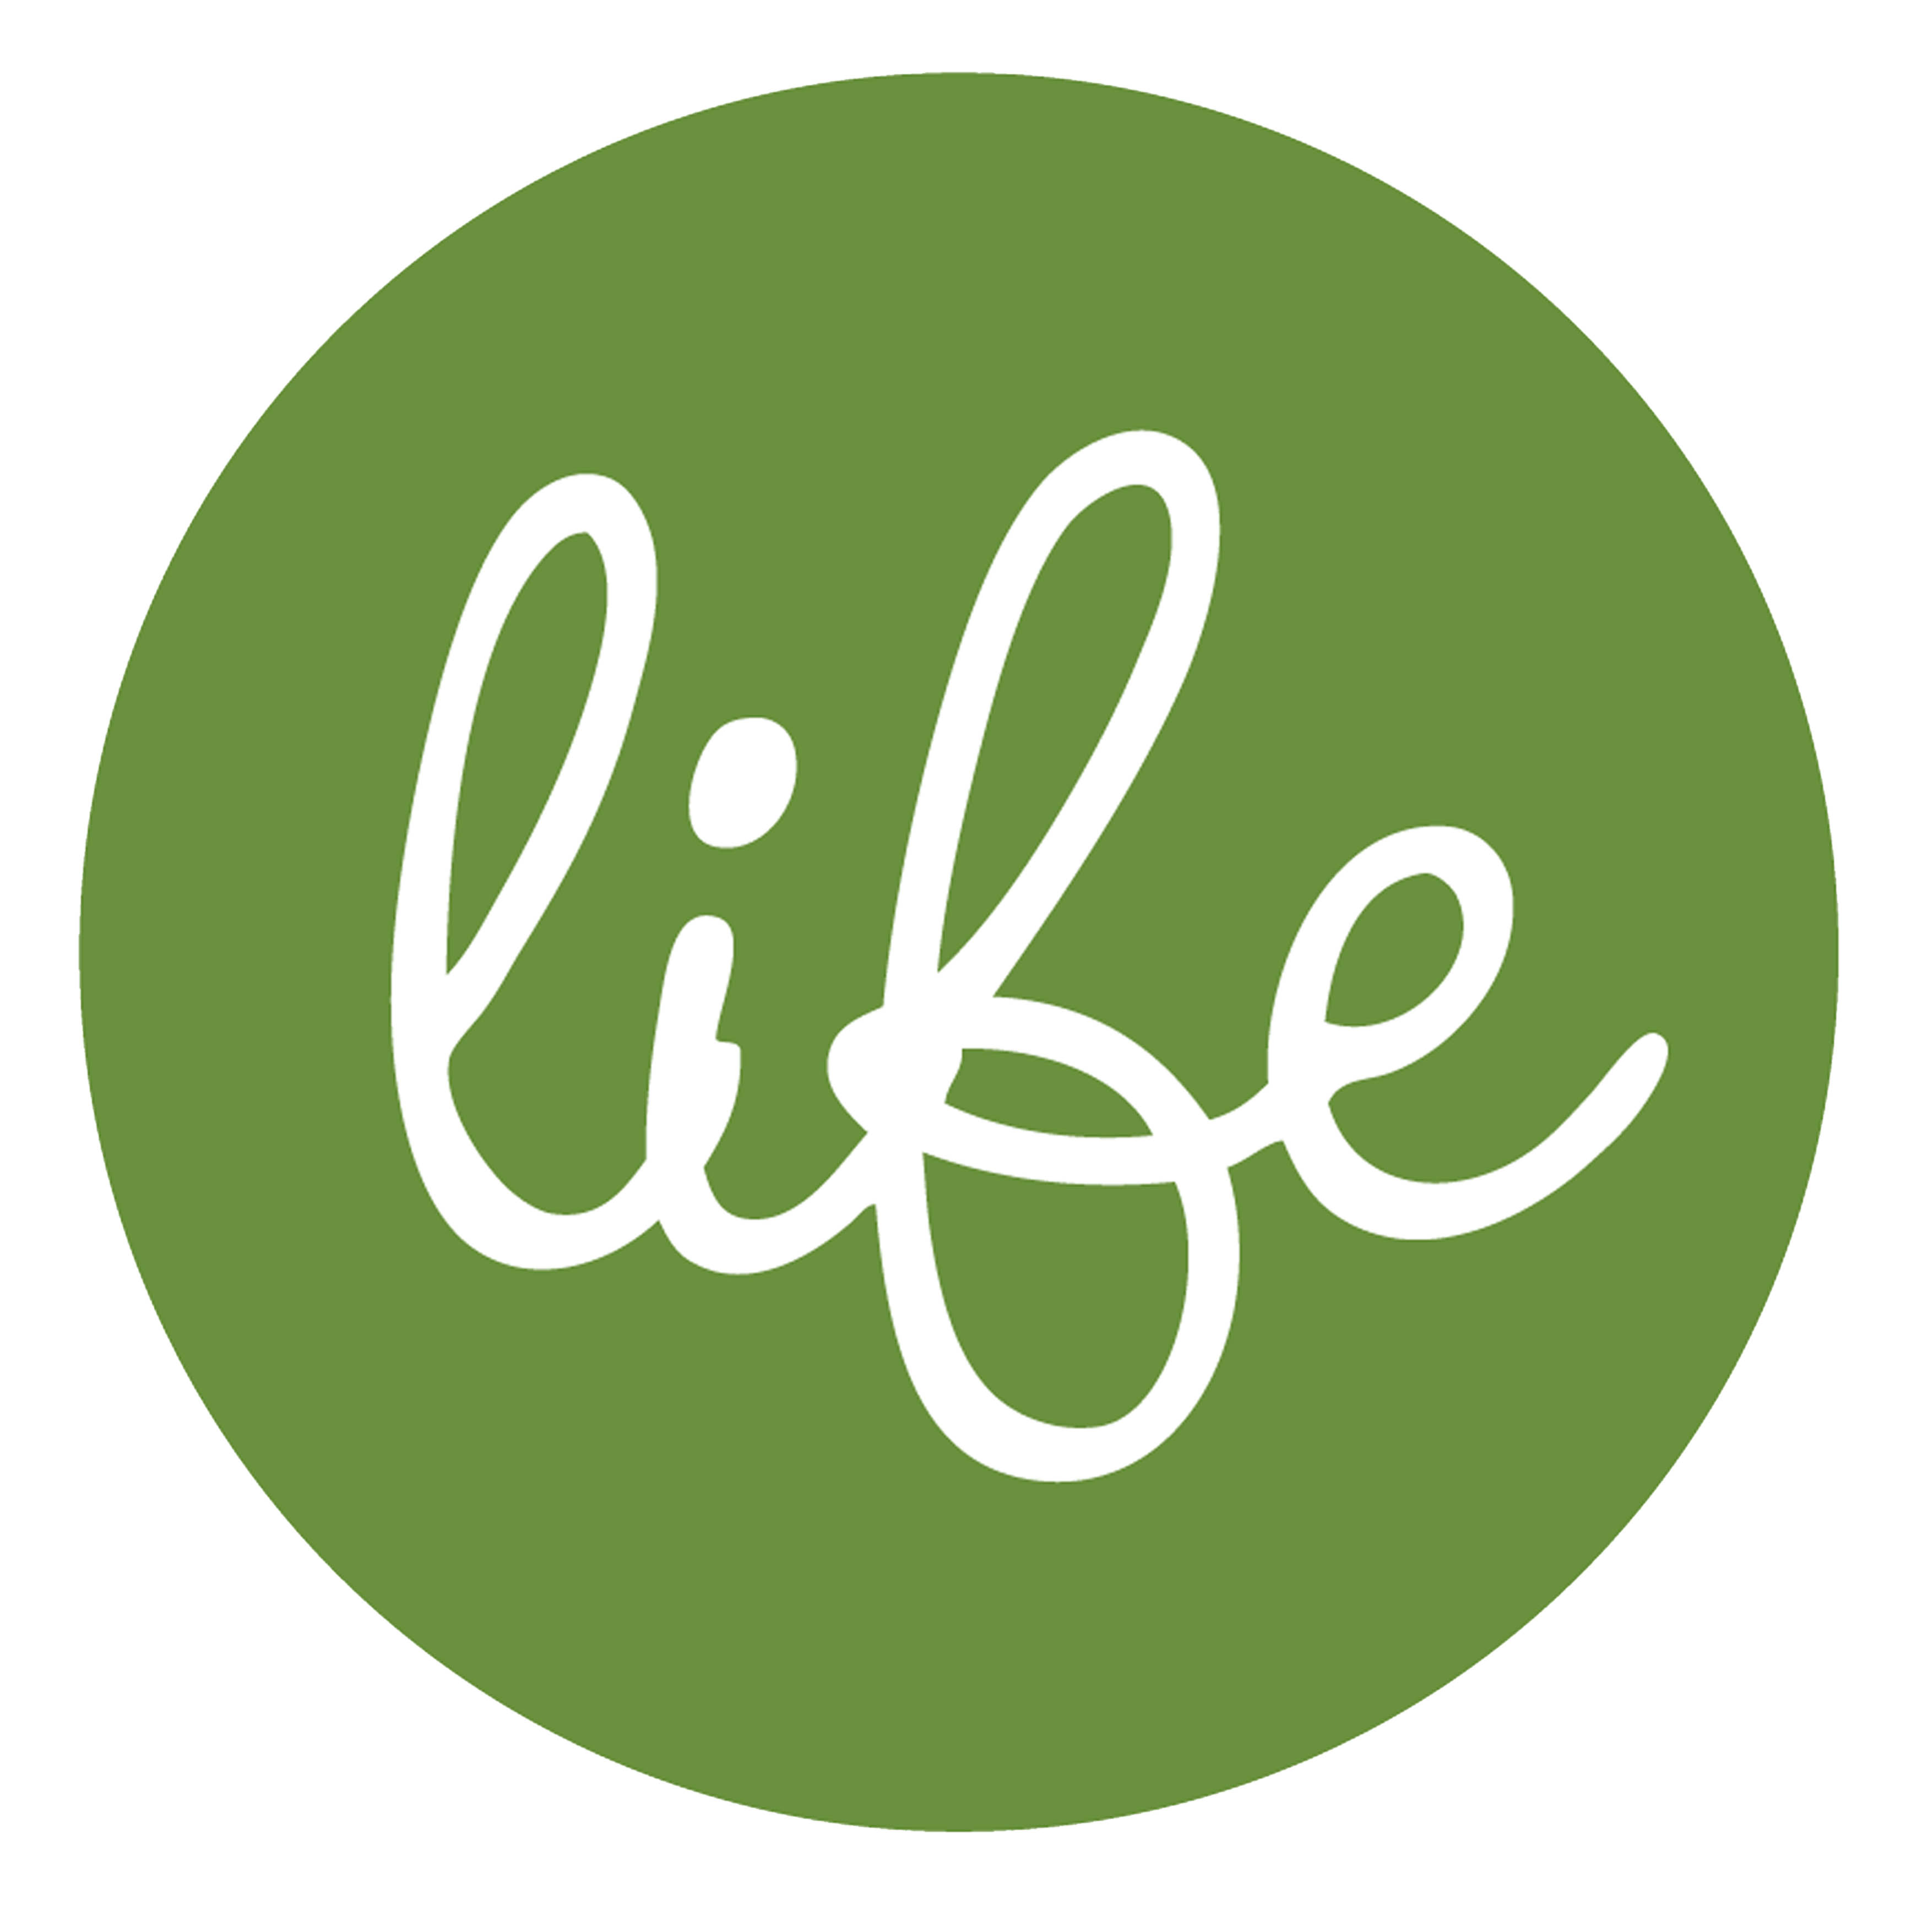 LifeChurch | Find, Live, Share